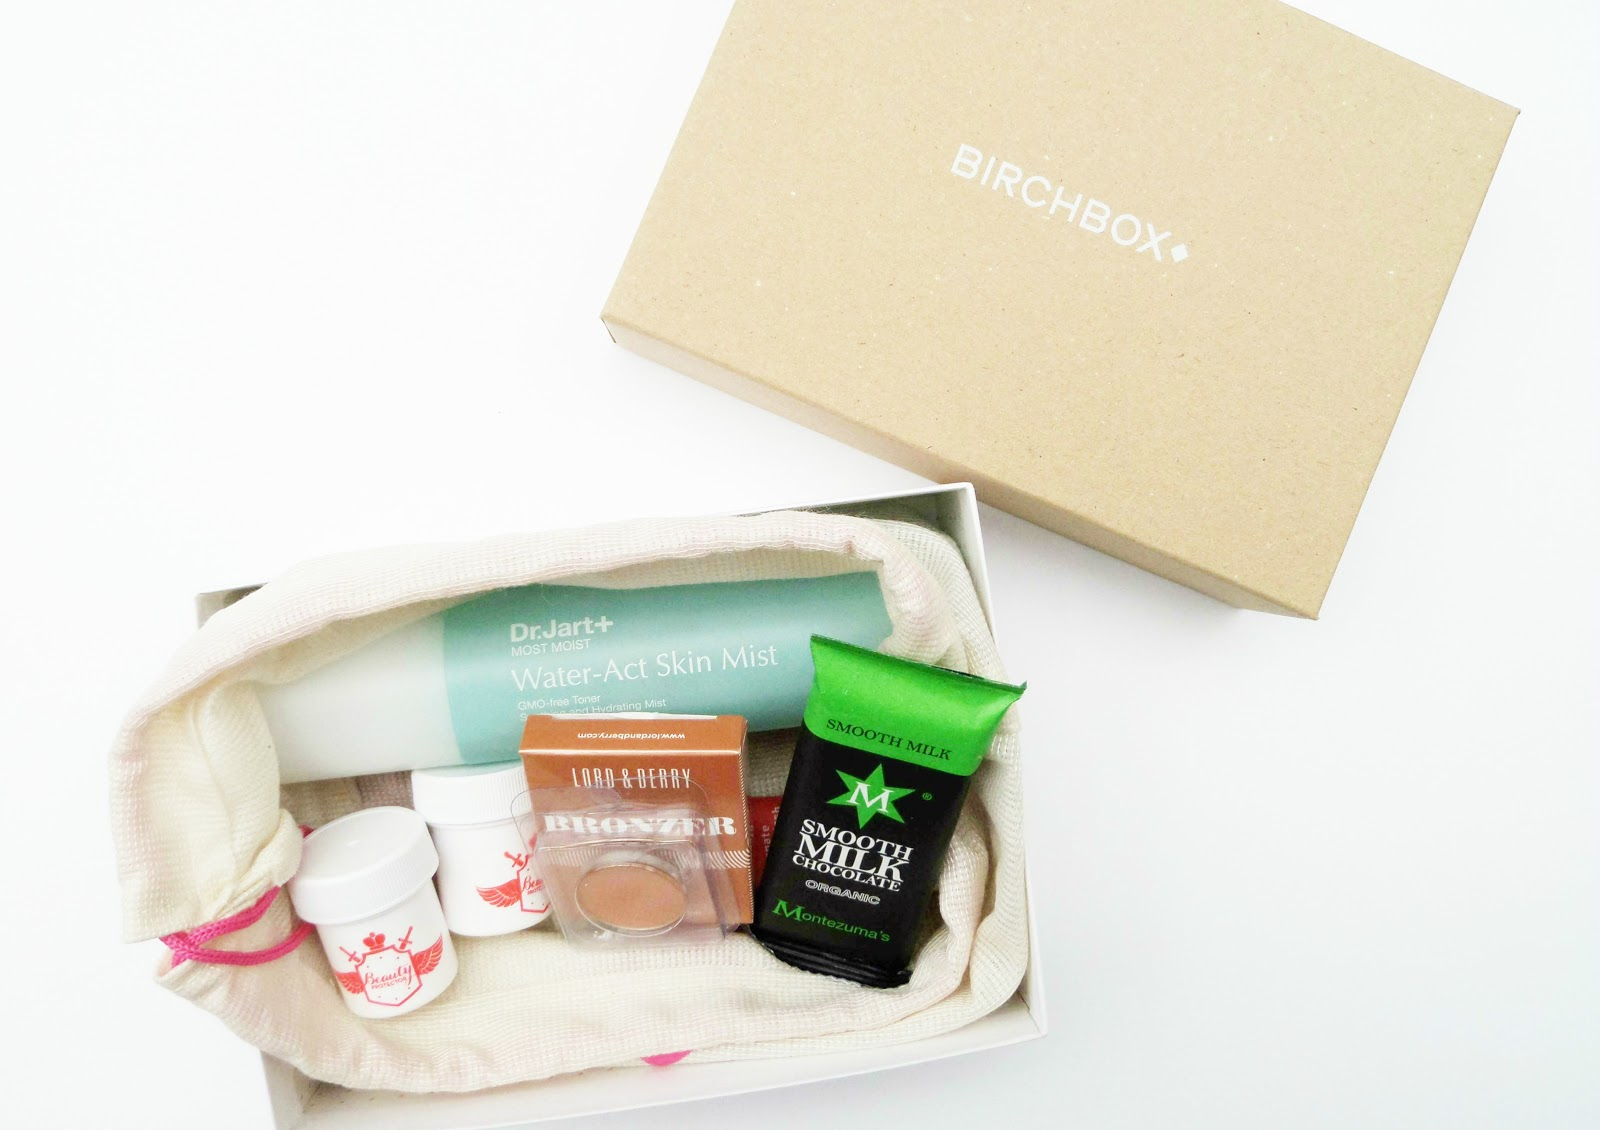 The November Birchbox Review